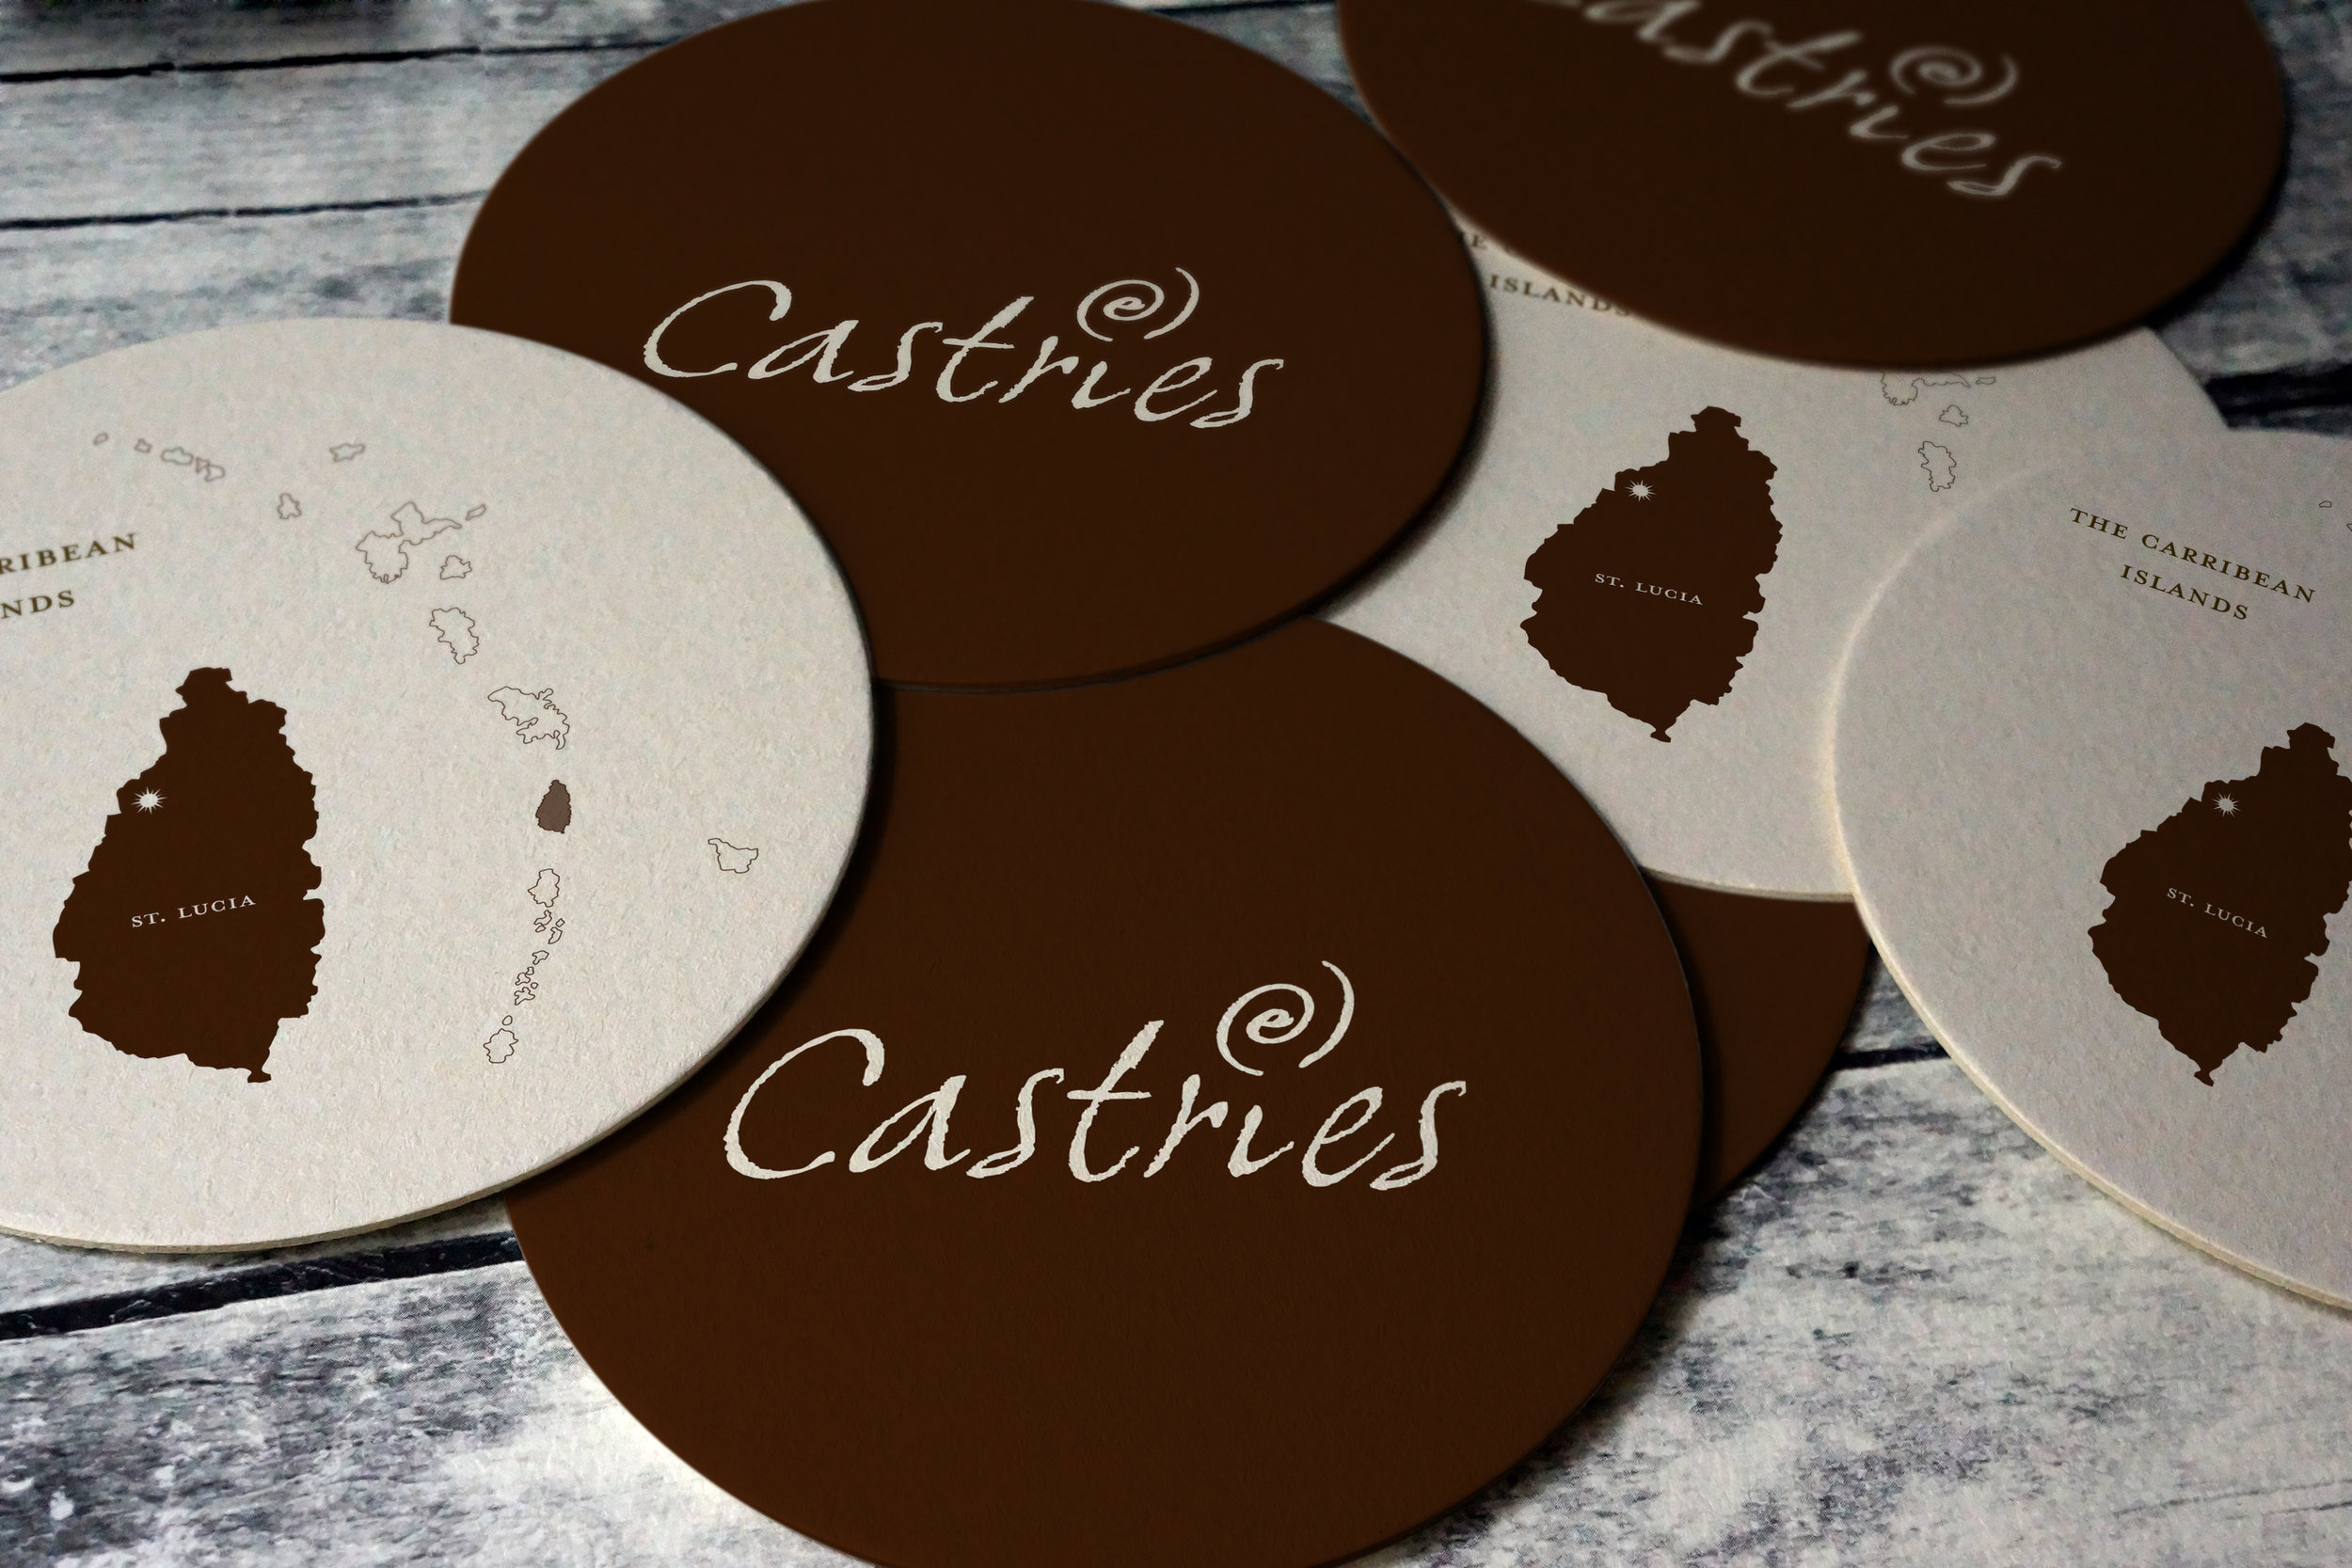 20160611_Castries Coasters.jpg